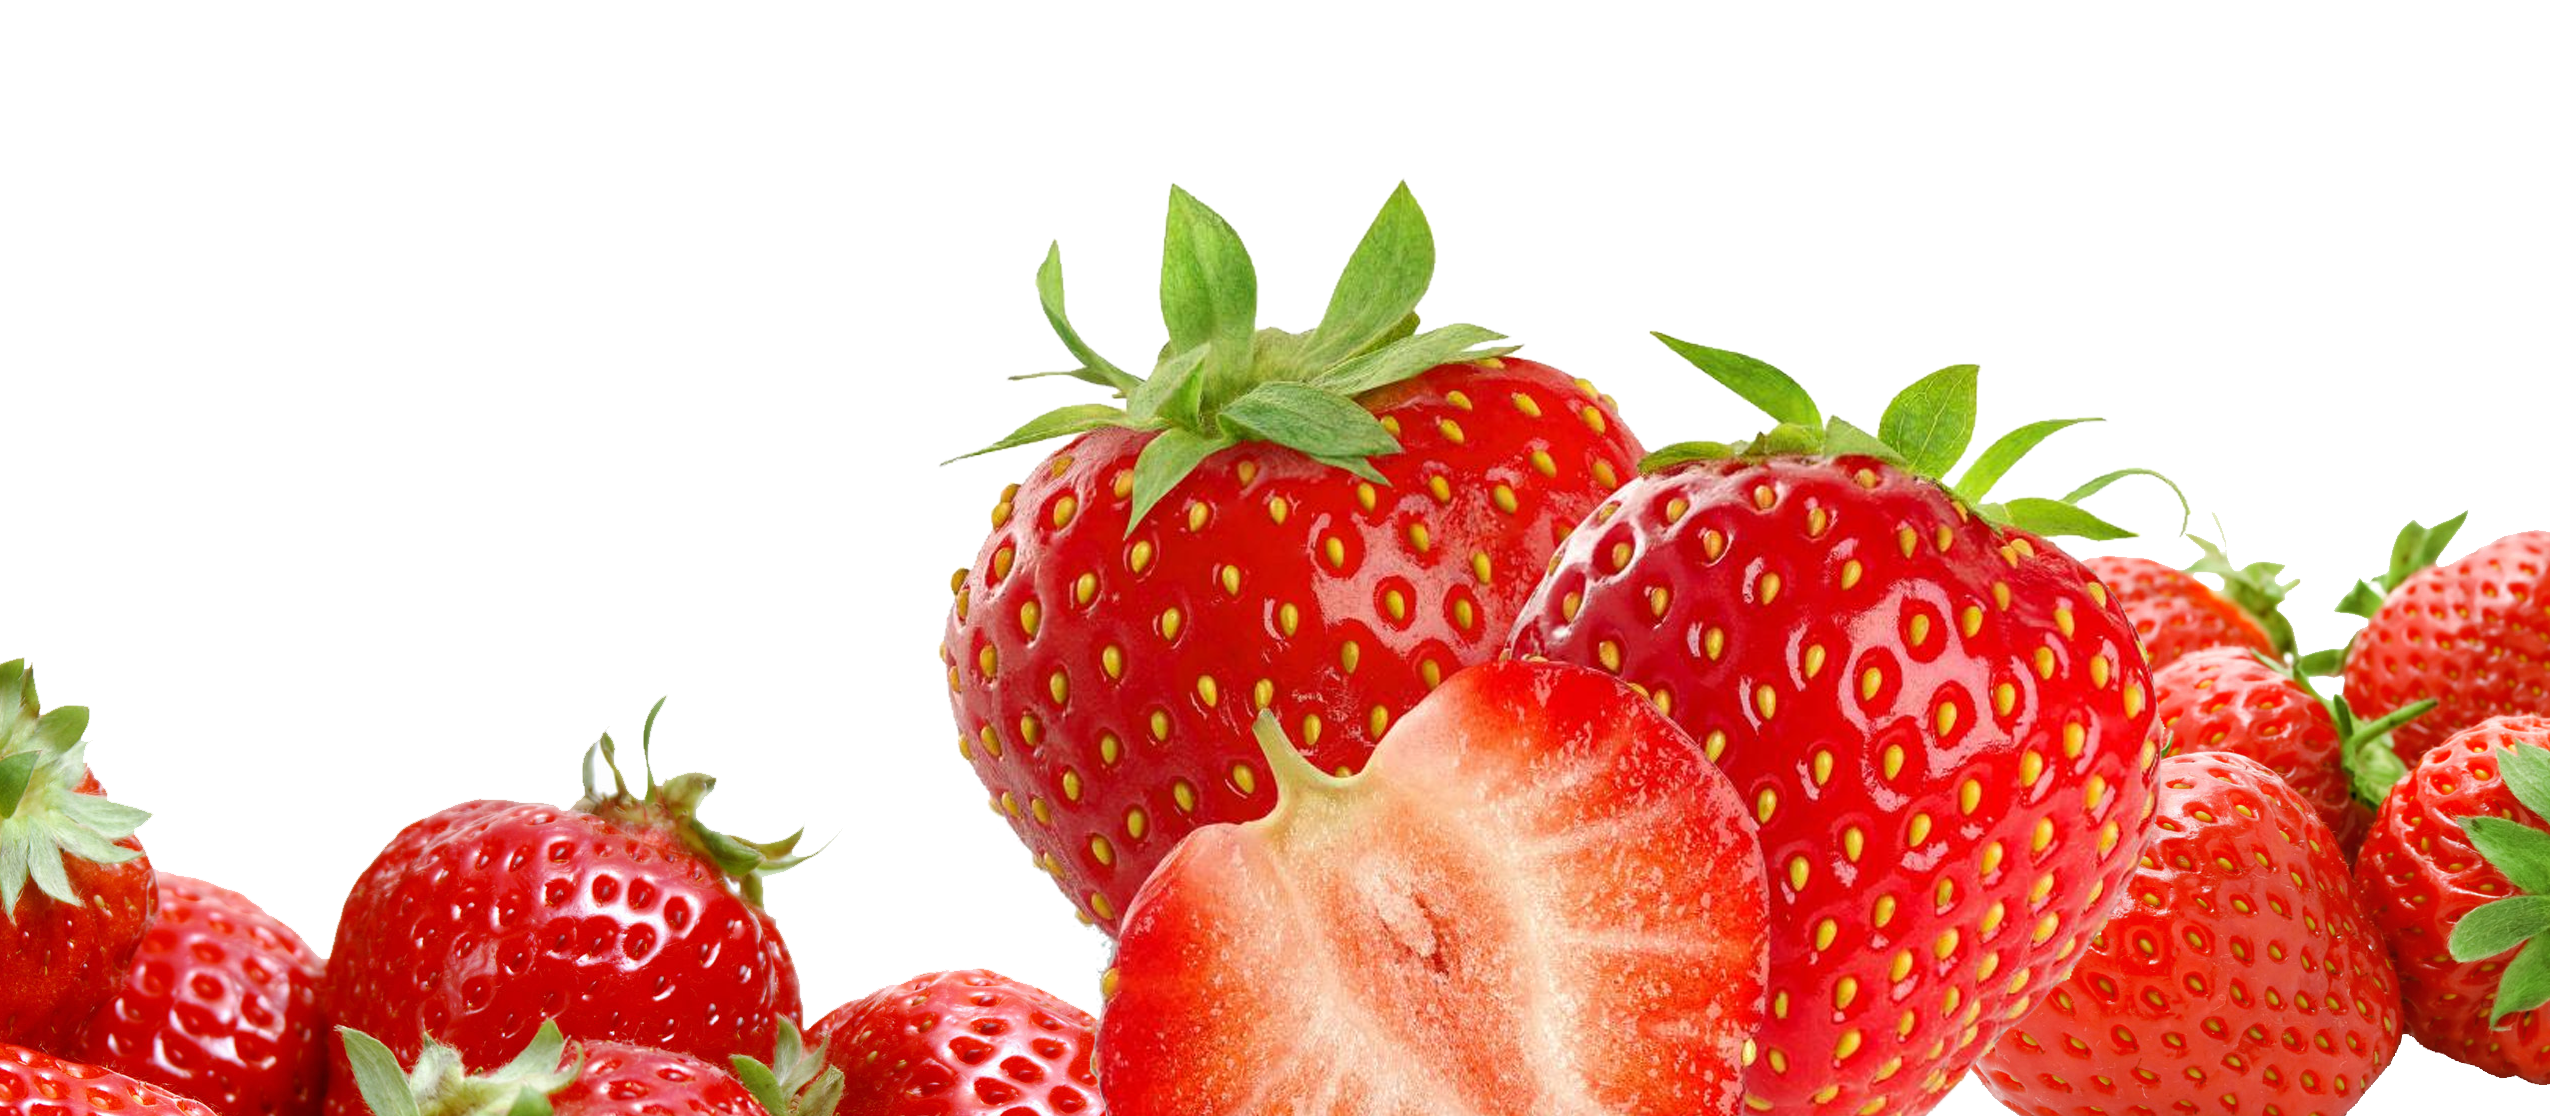 Strawberry PNG - 5178